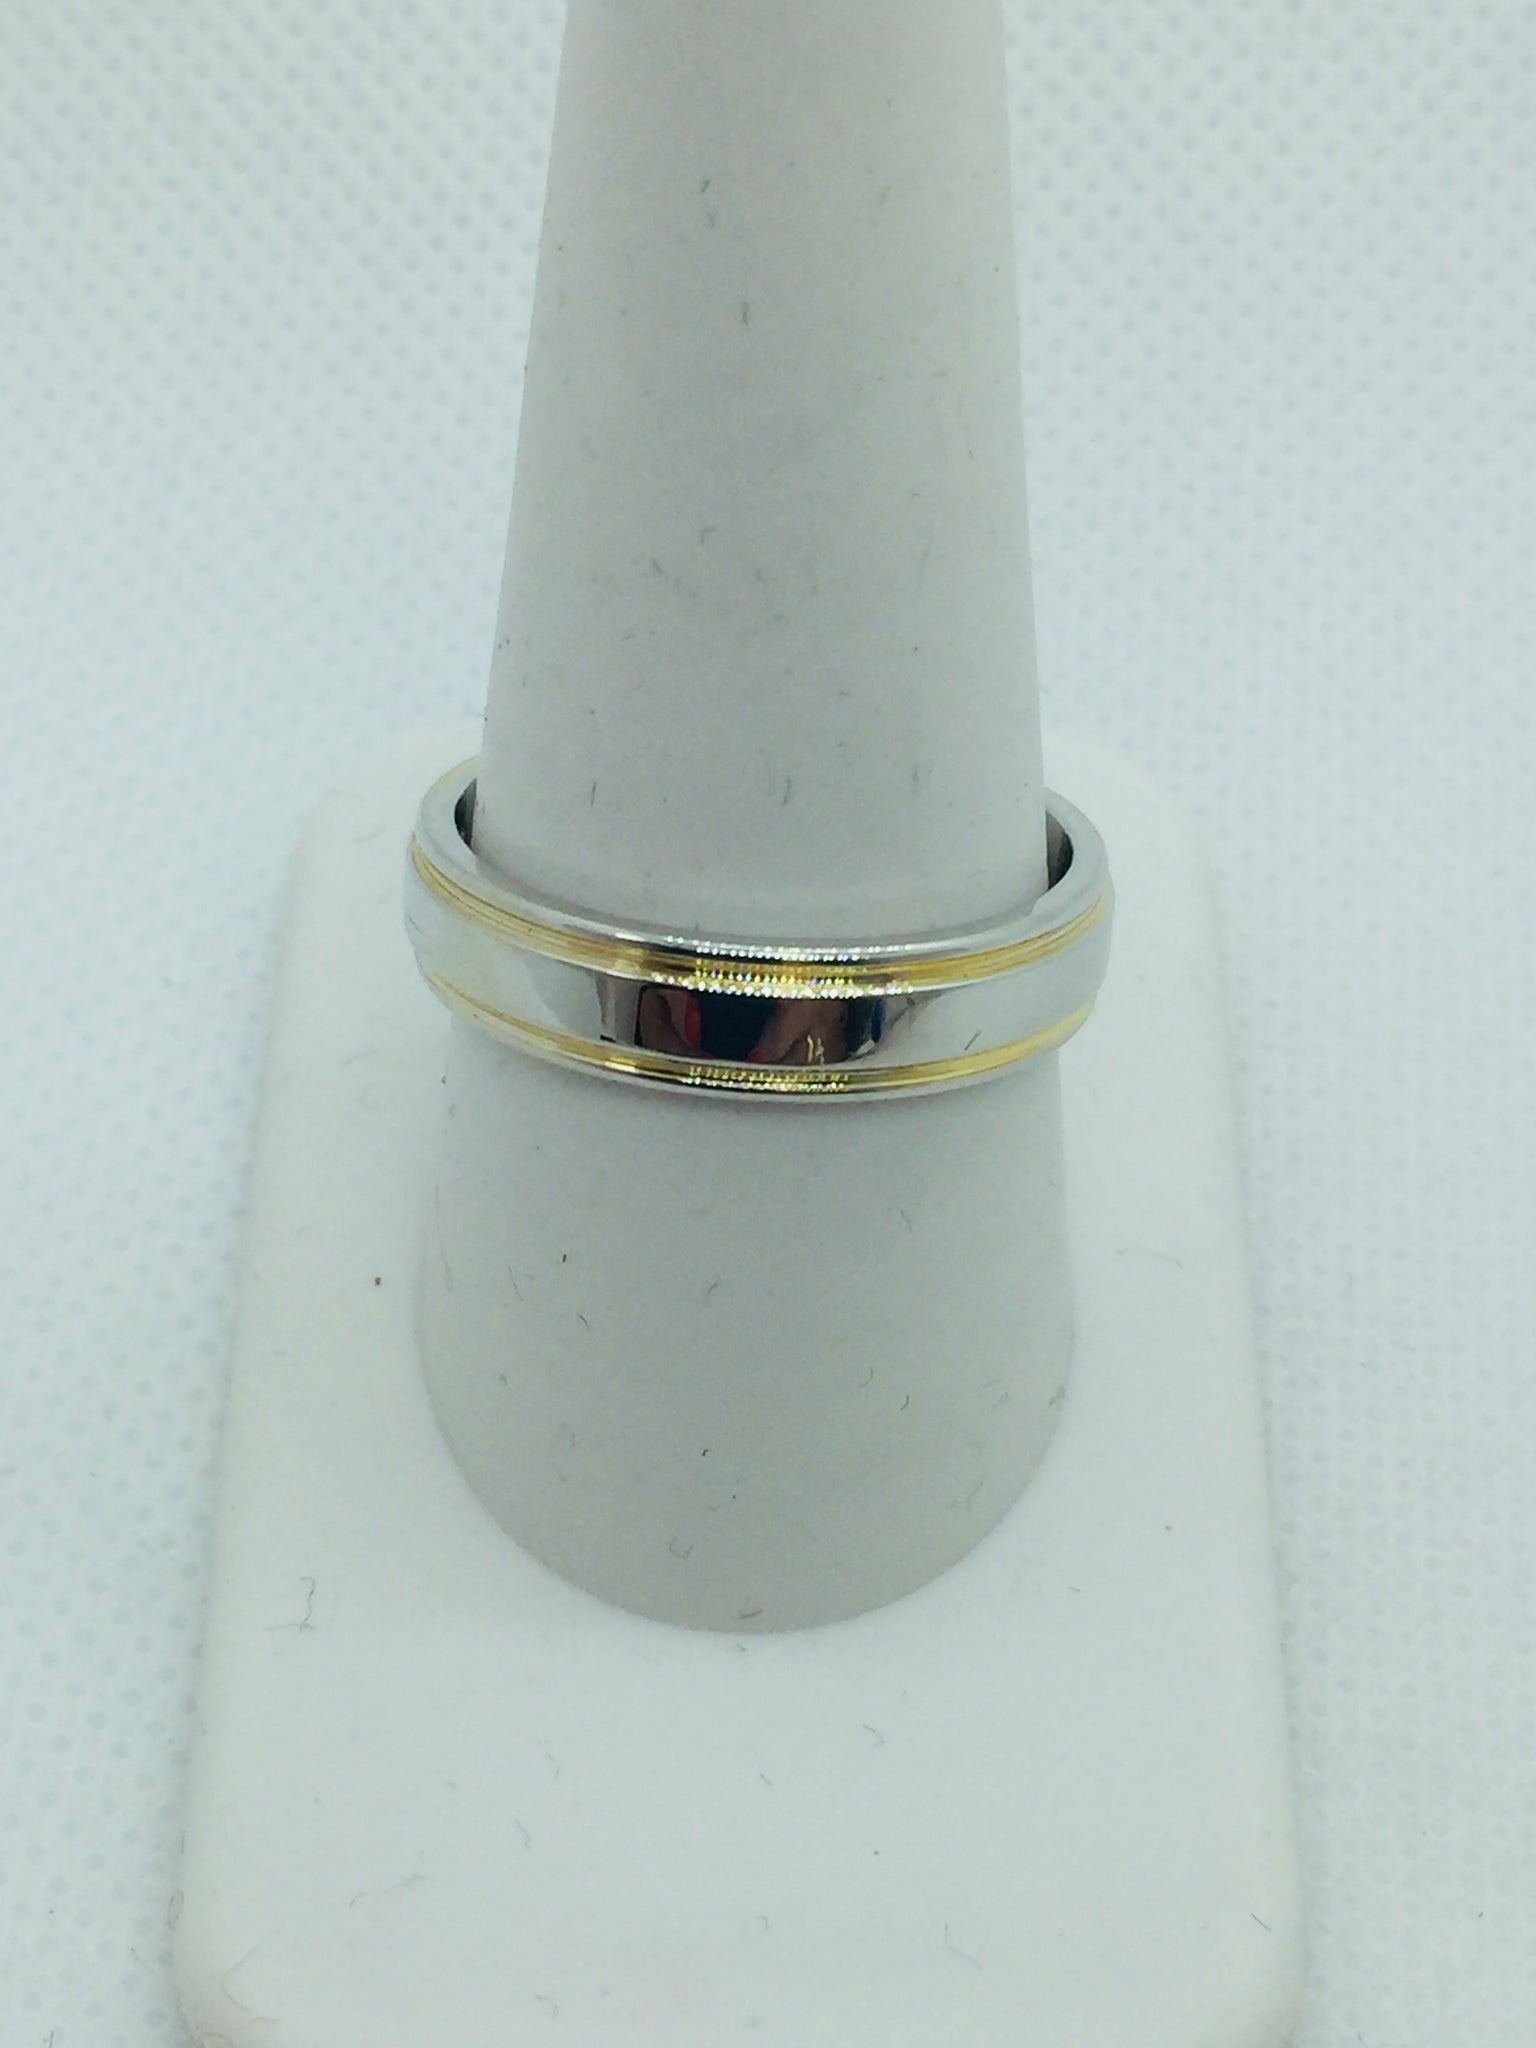 14k Solid Two Tone Gold Men's Wedding Band Ring